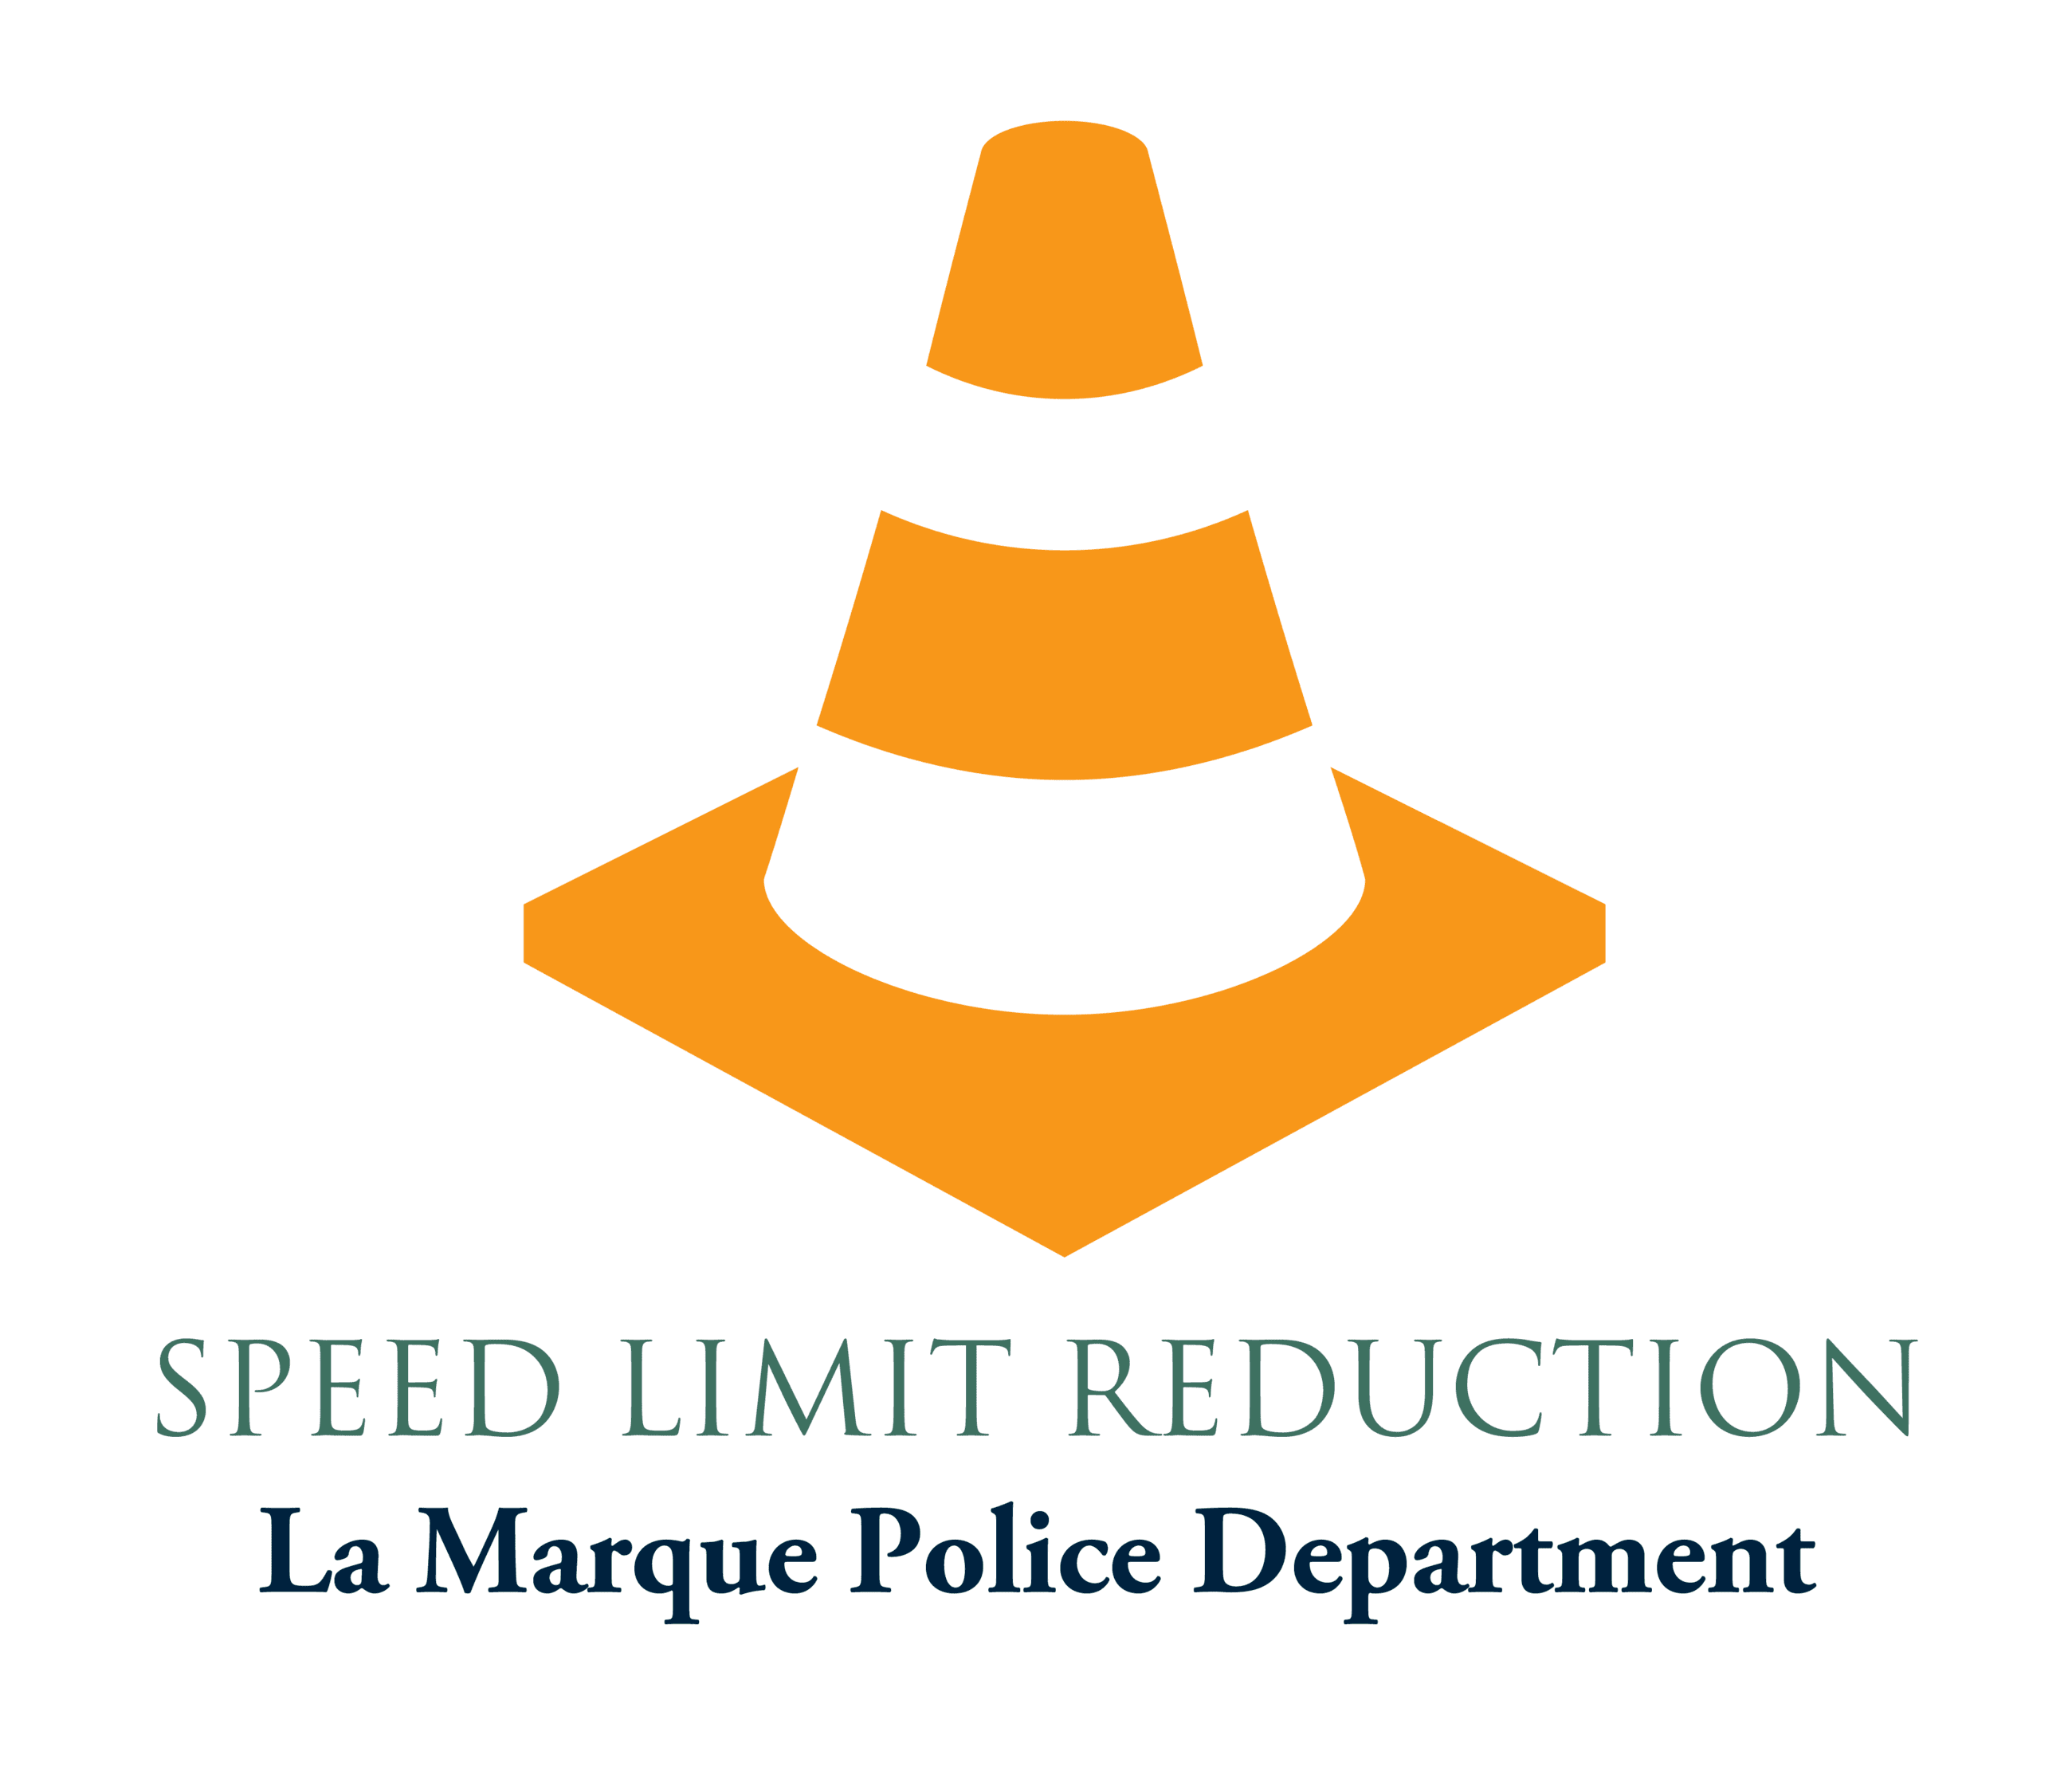 Speed Limit Reduction 2019 graphic